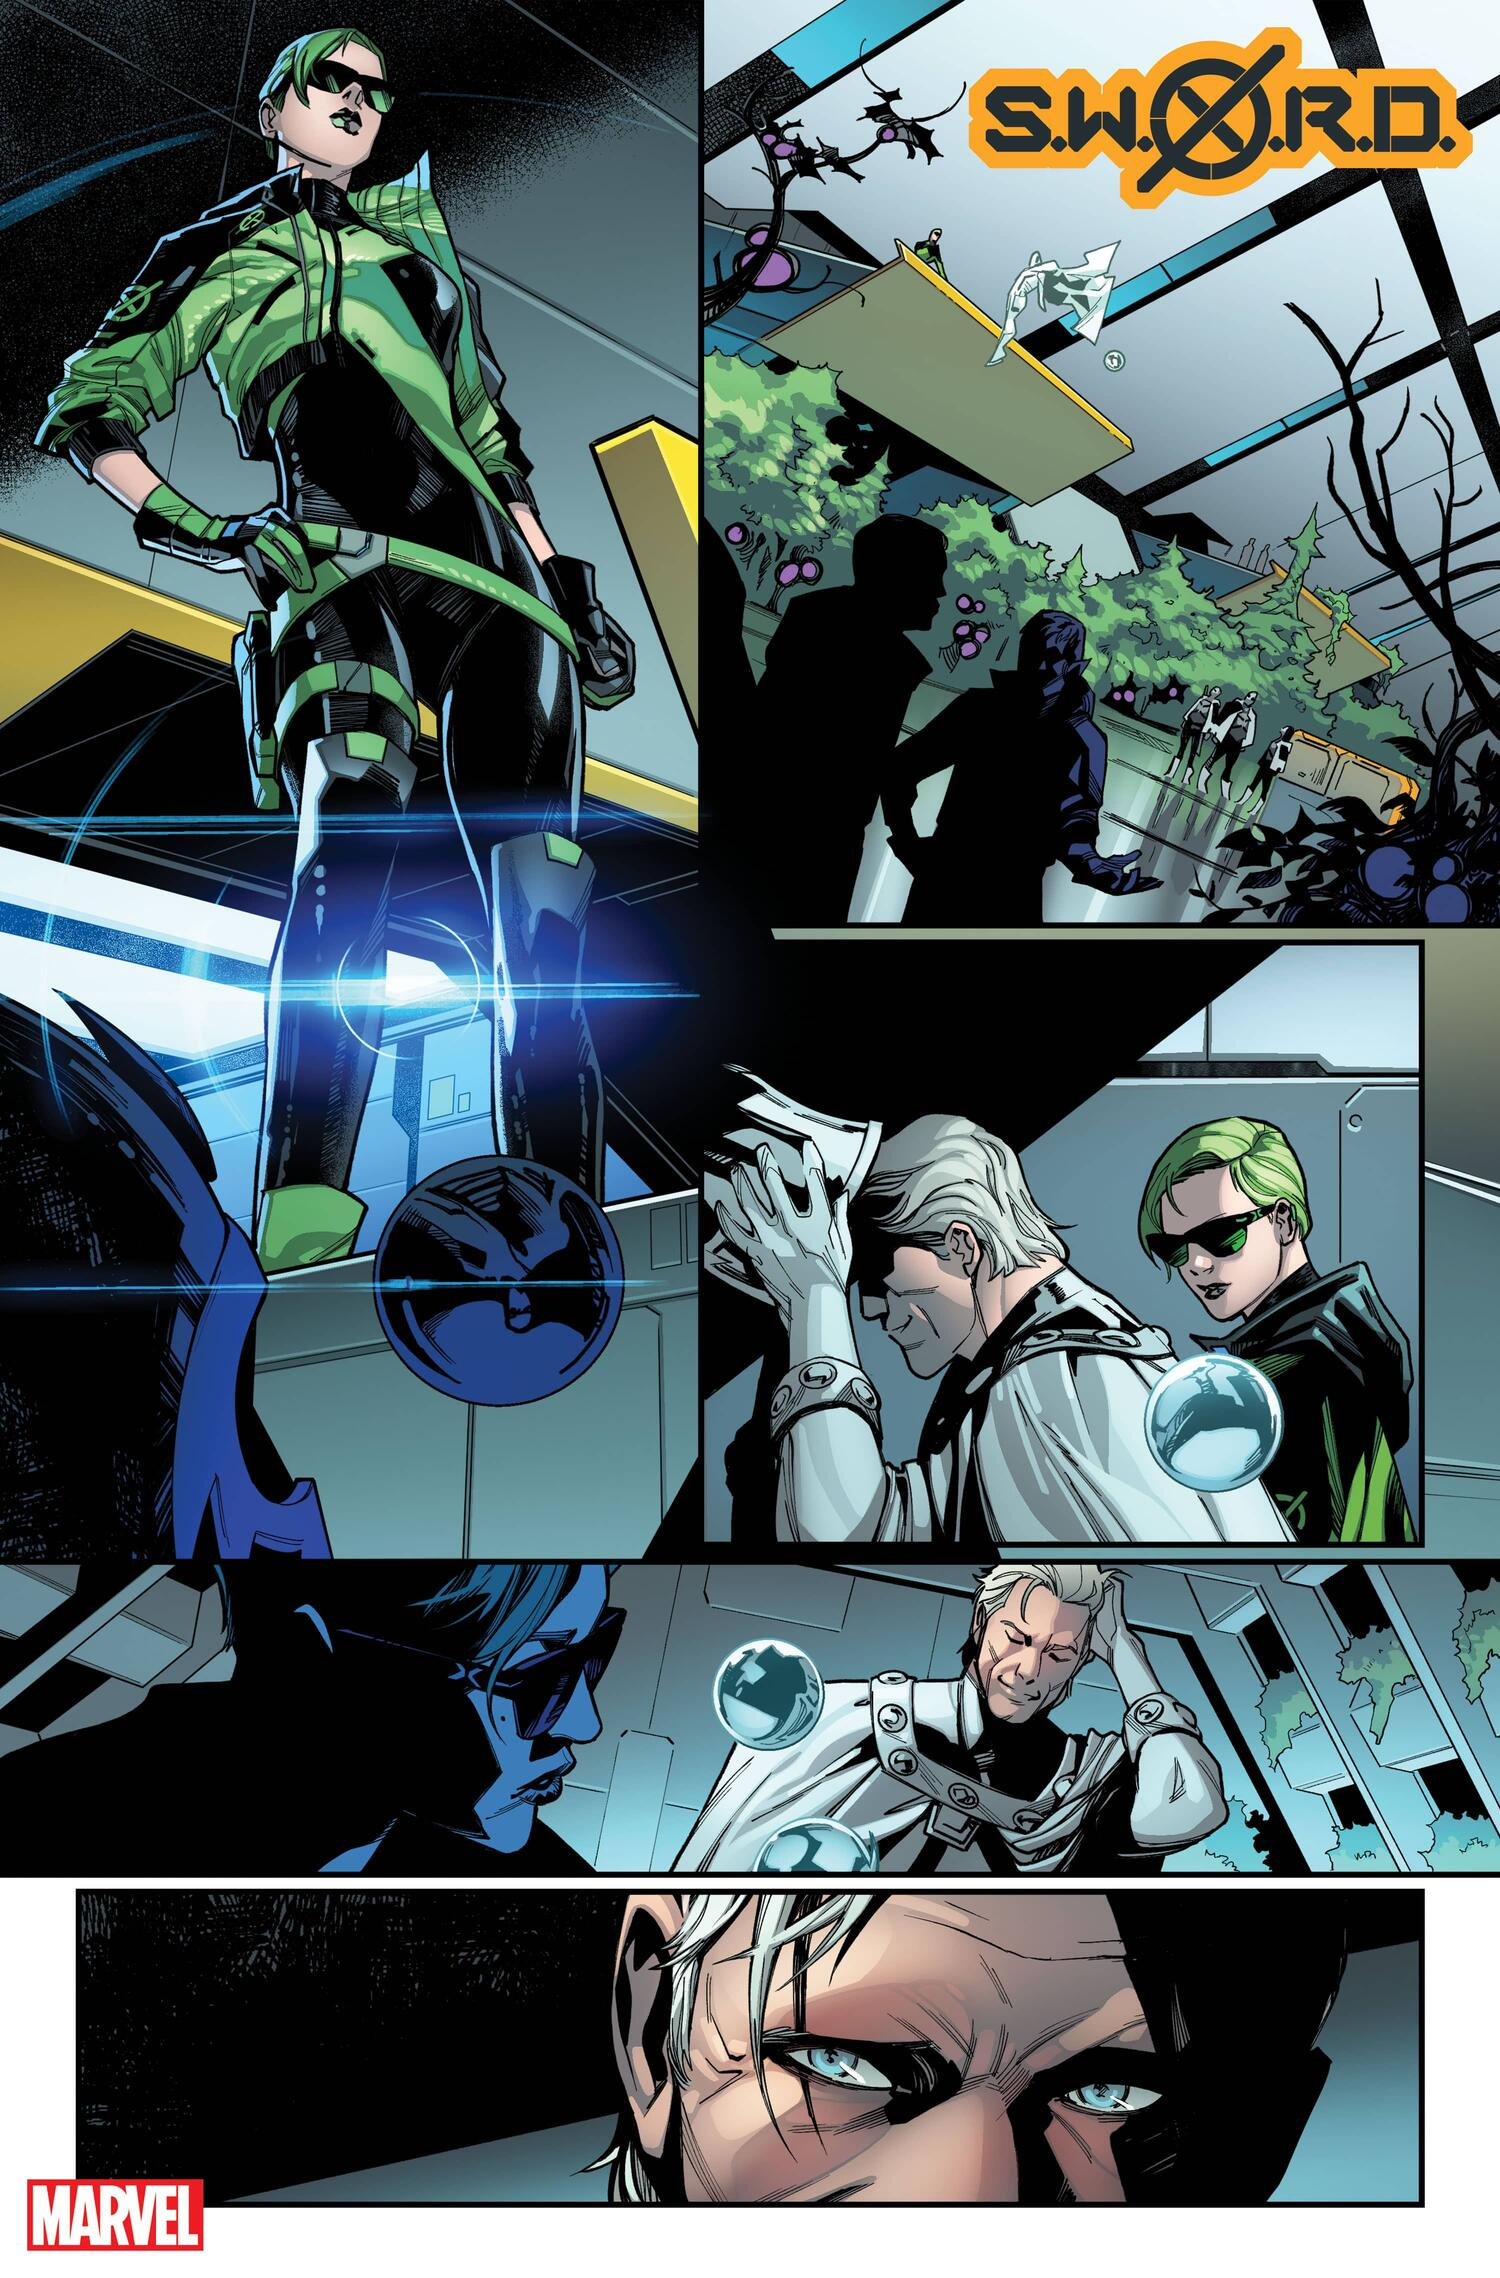 S.W.O.R.D. #1 preview pages by Valerio Schiti with colors by Marte Gracia